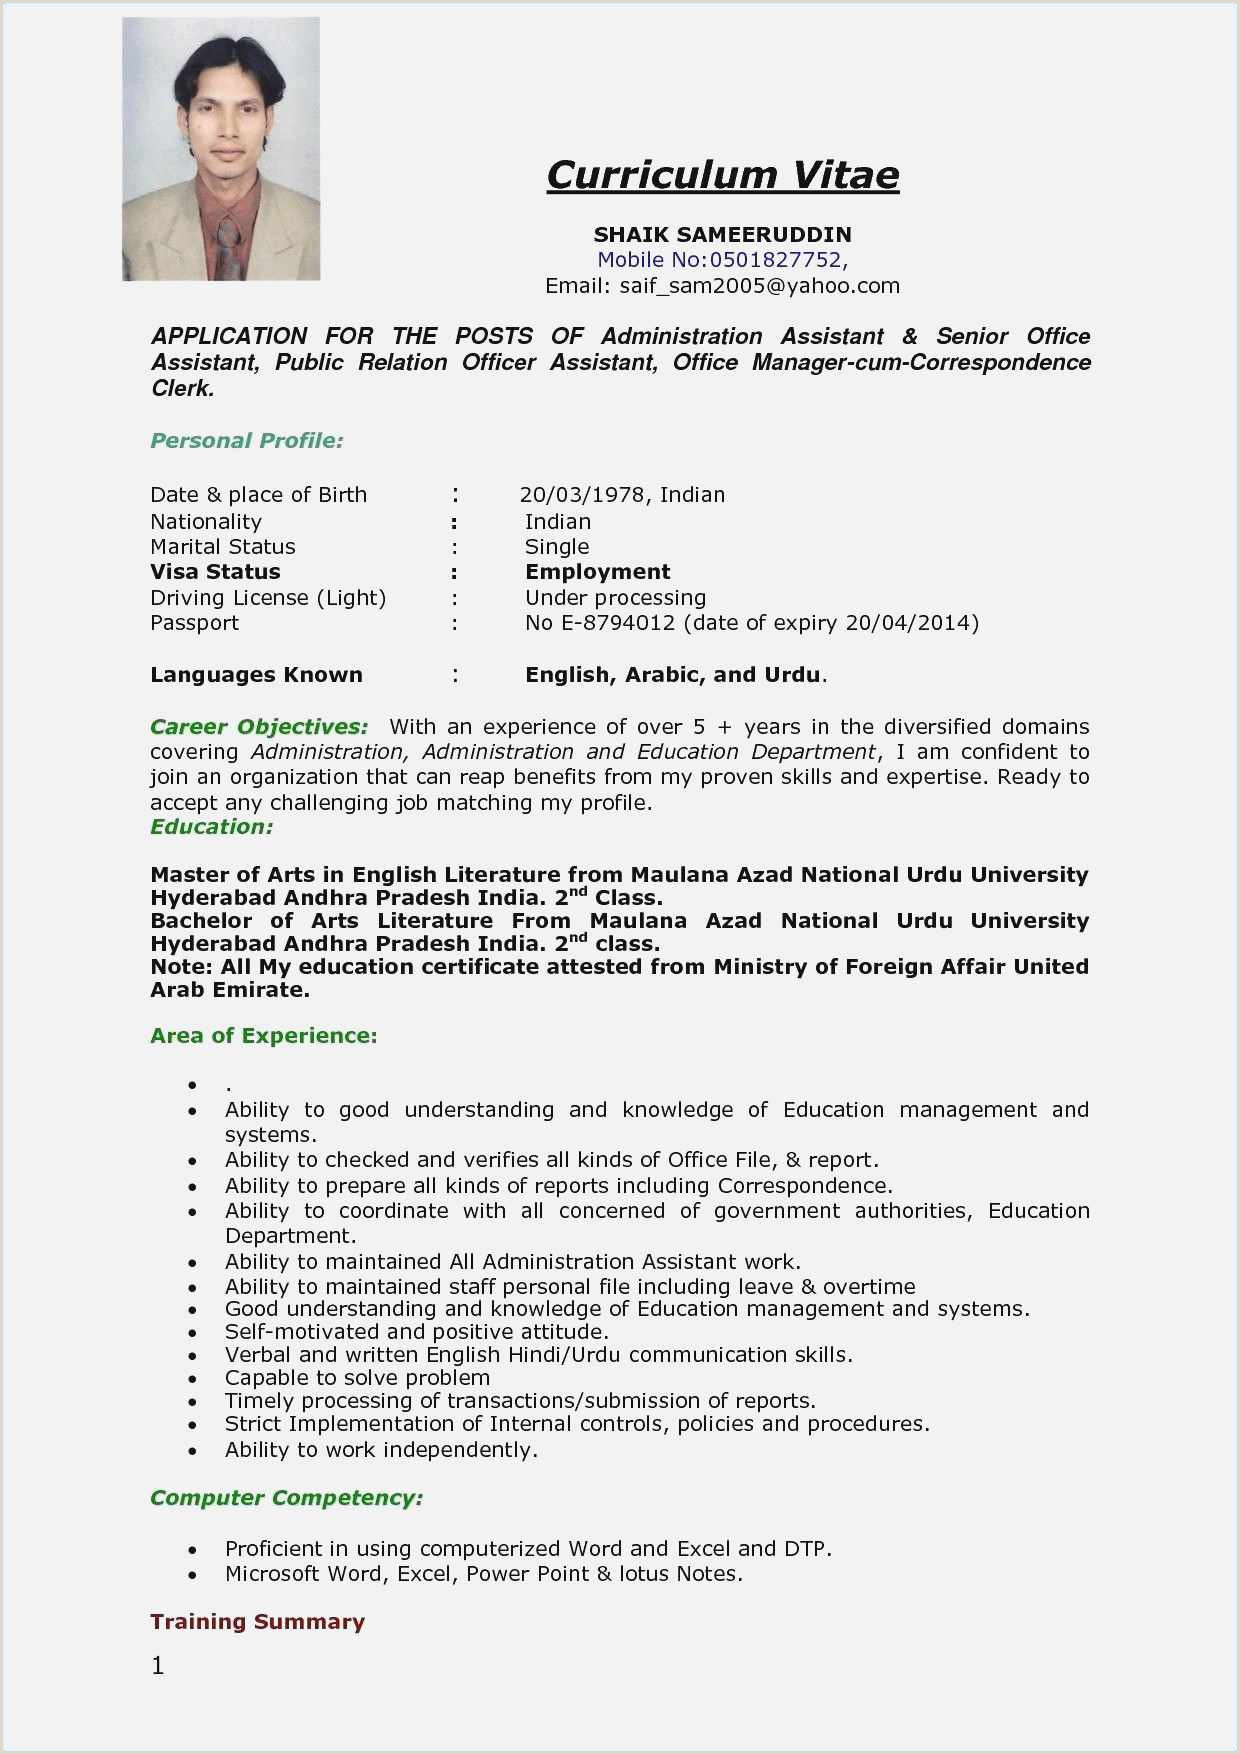 A Professional Cv format Pdf Free Curriculum Vitae Examples Construction Beautiful